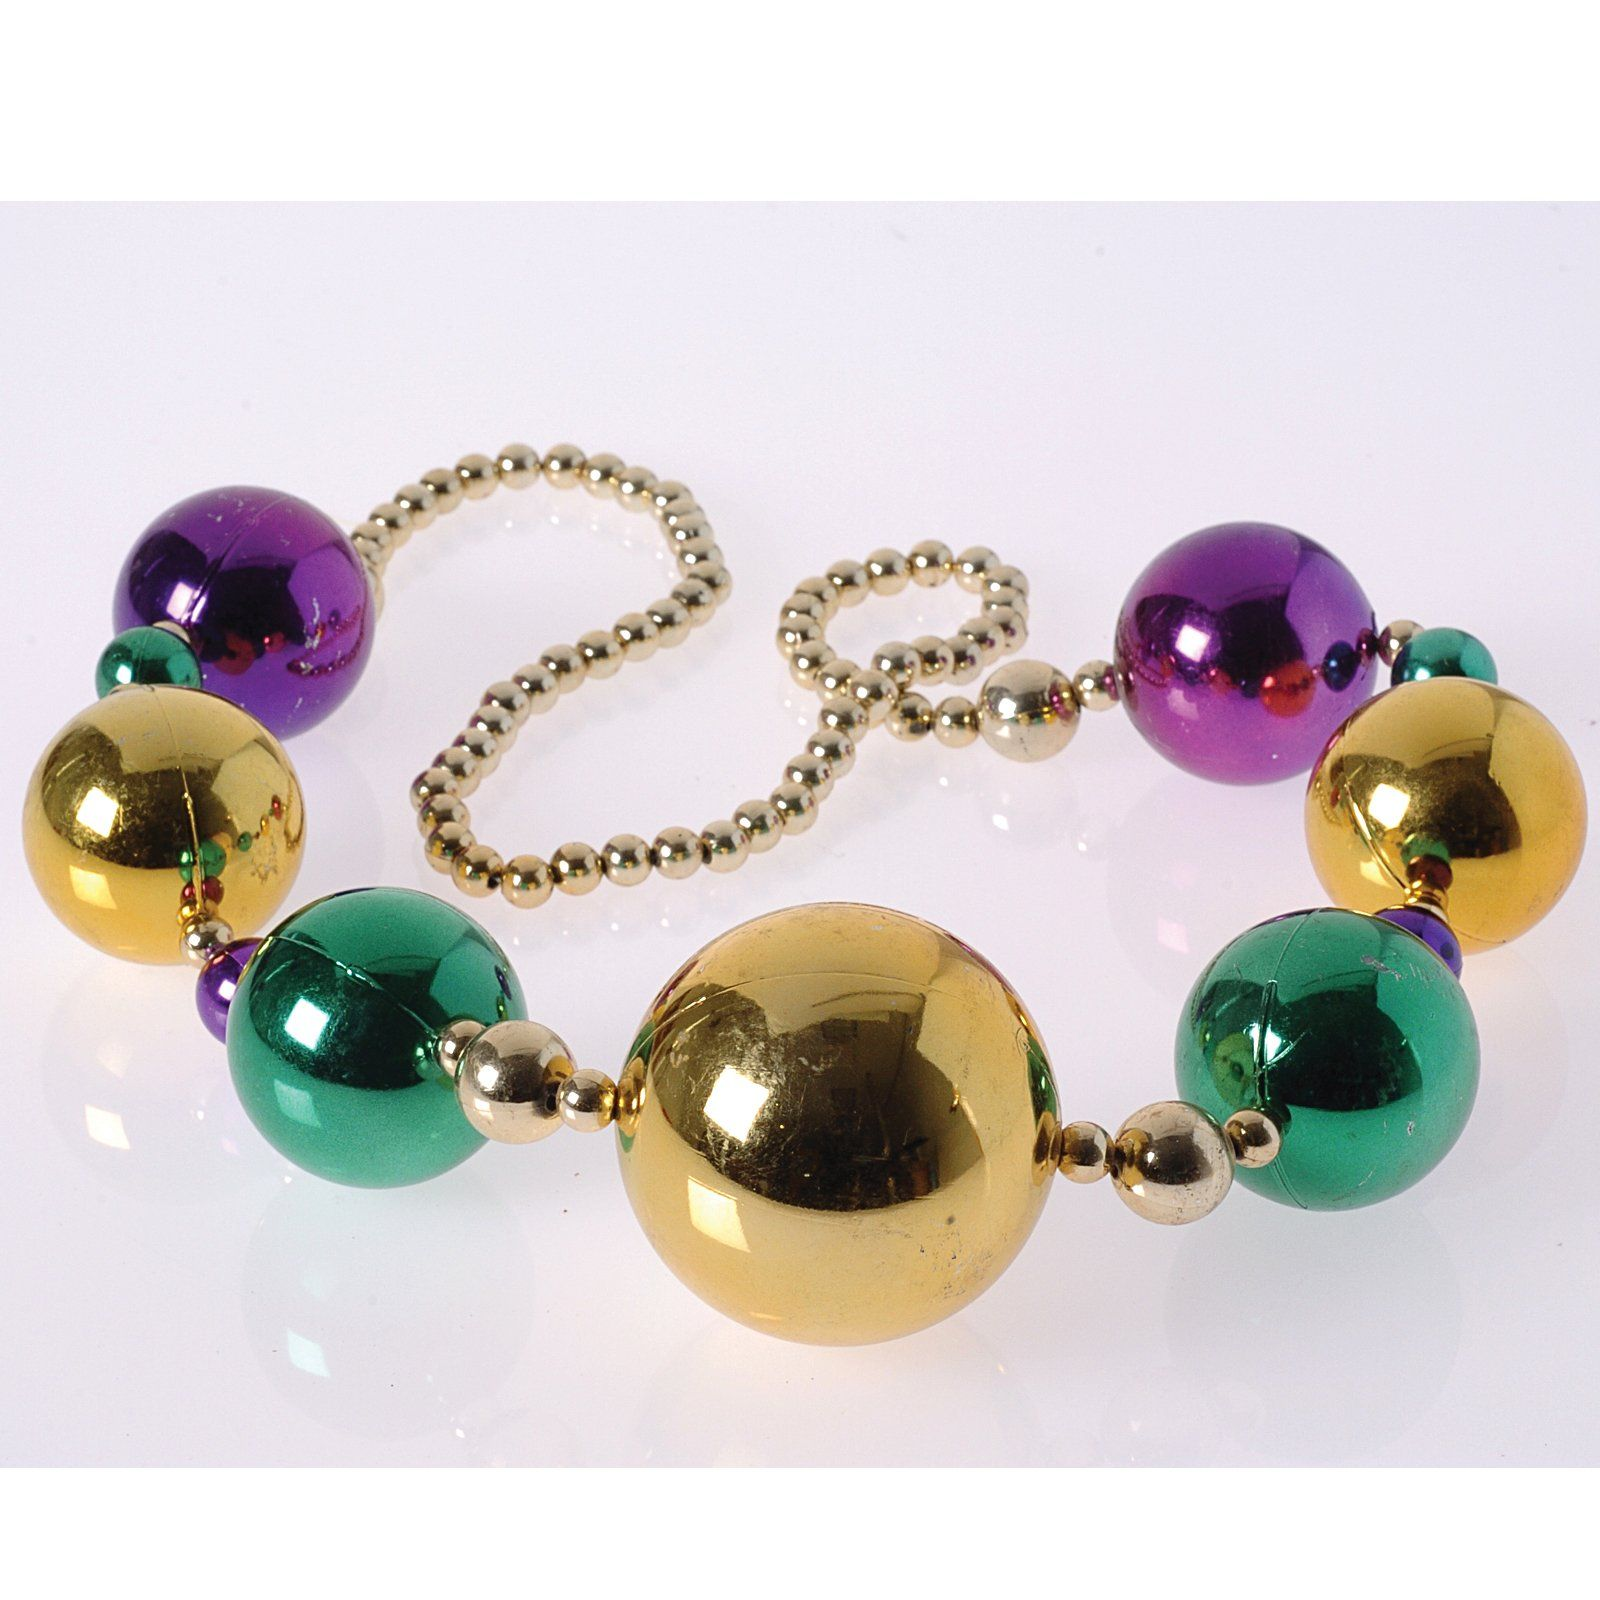 Humorous Novelty Necklace Beads Plastic Jewelry & Watches